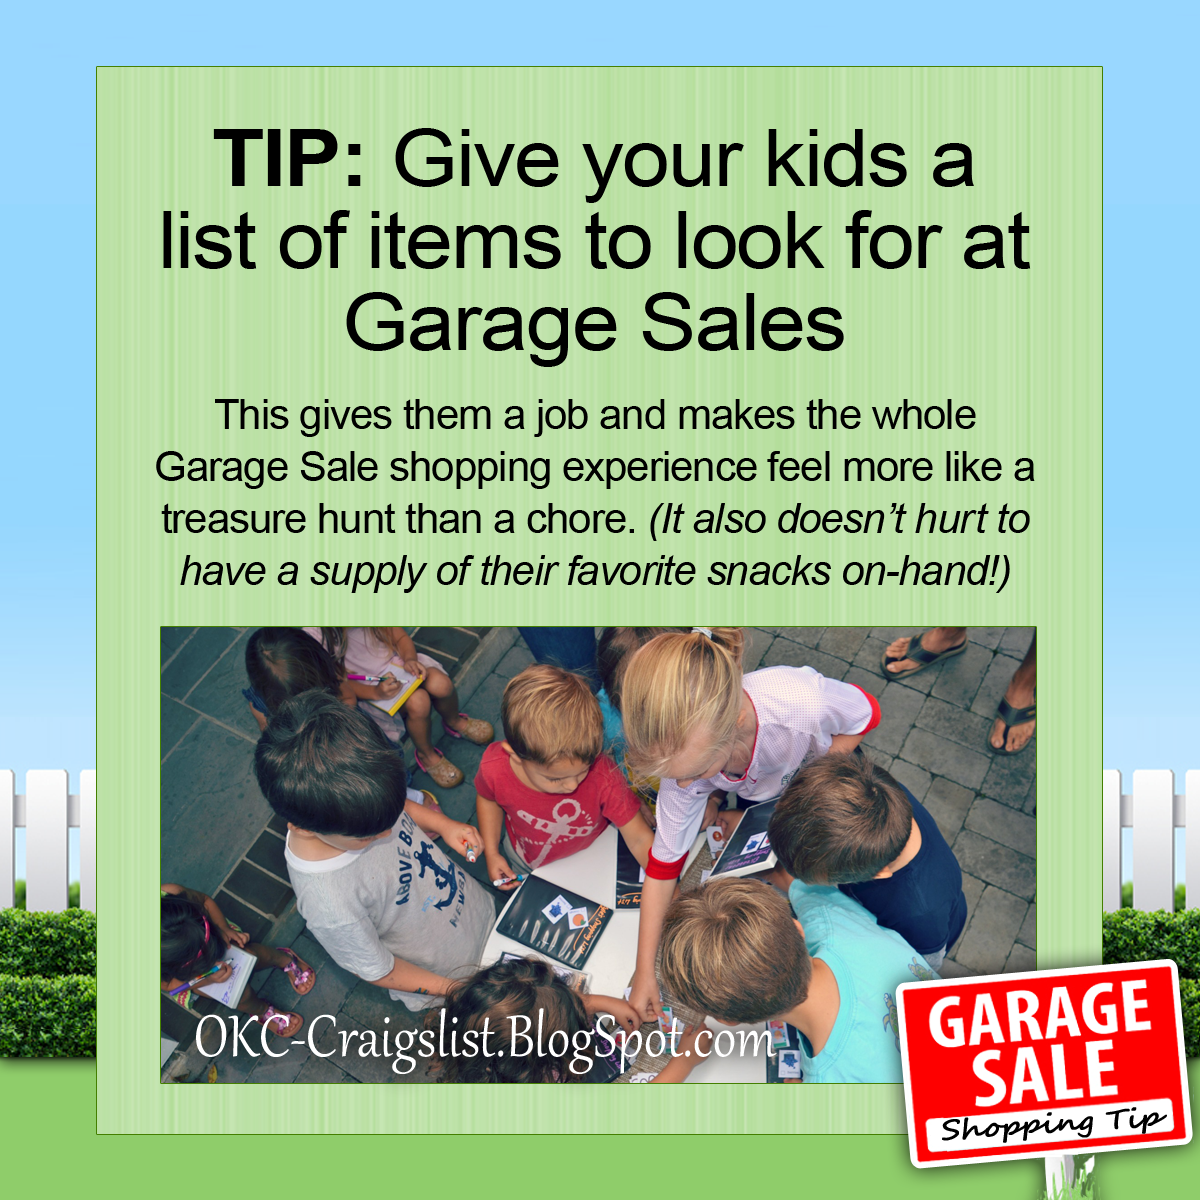 GARAGE SALE TIP: Turn Garage Saling into a Treasure Hunt for Kids